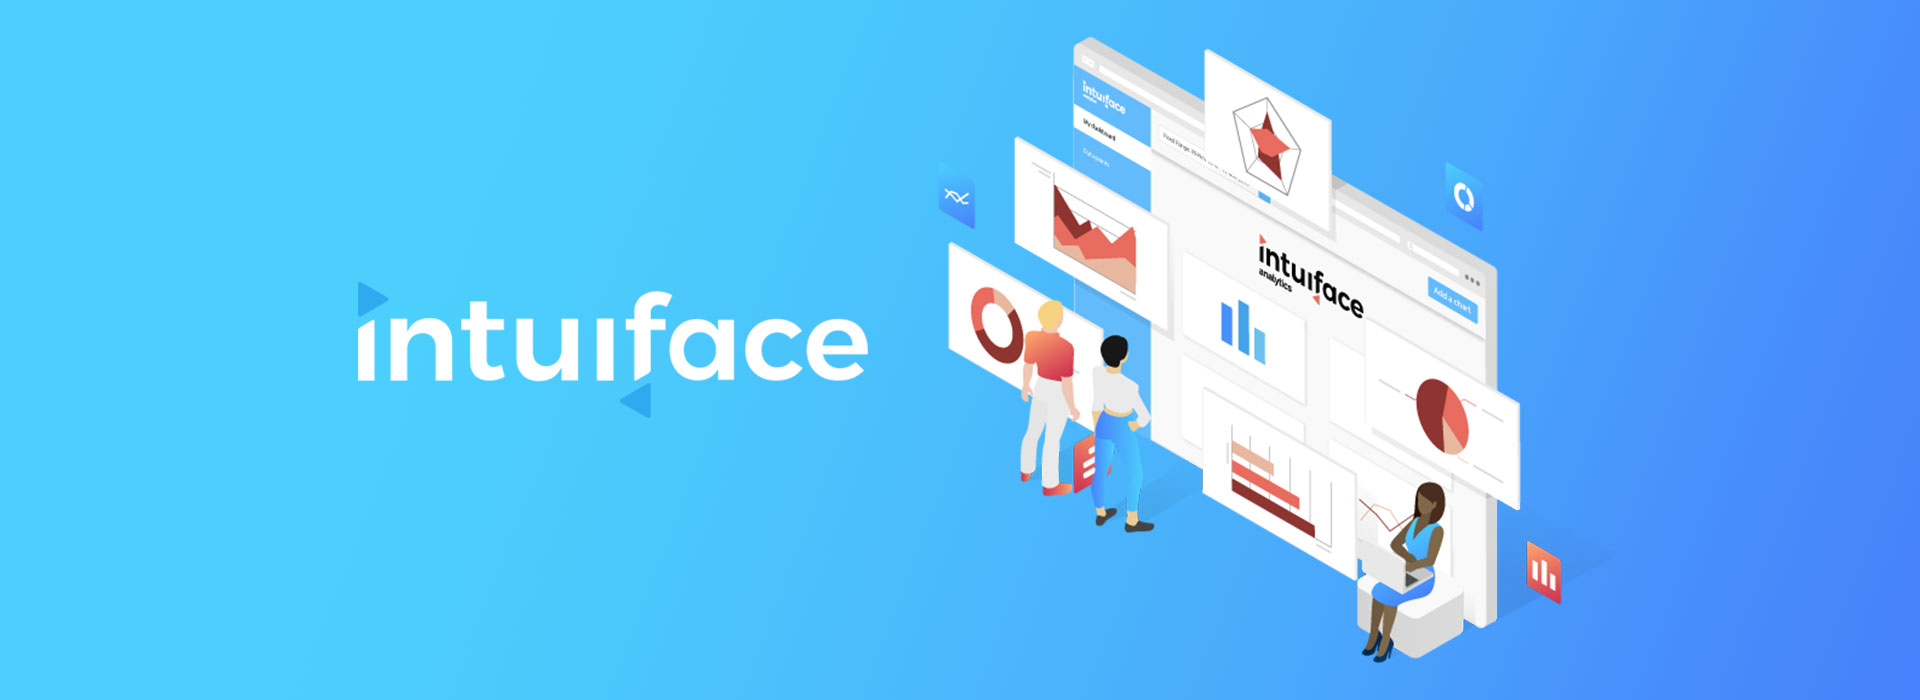 Intuiface Partner Media Solutions Schweiz